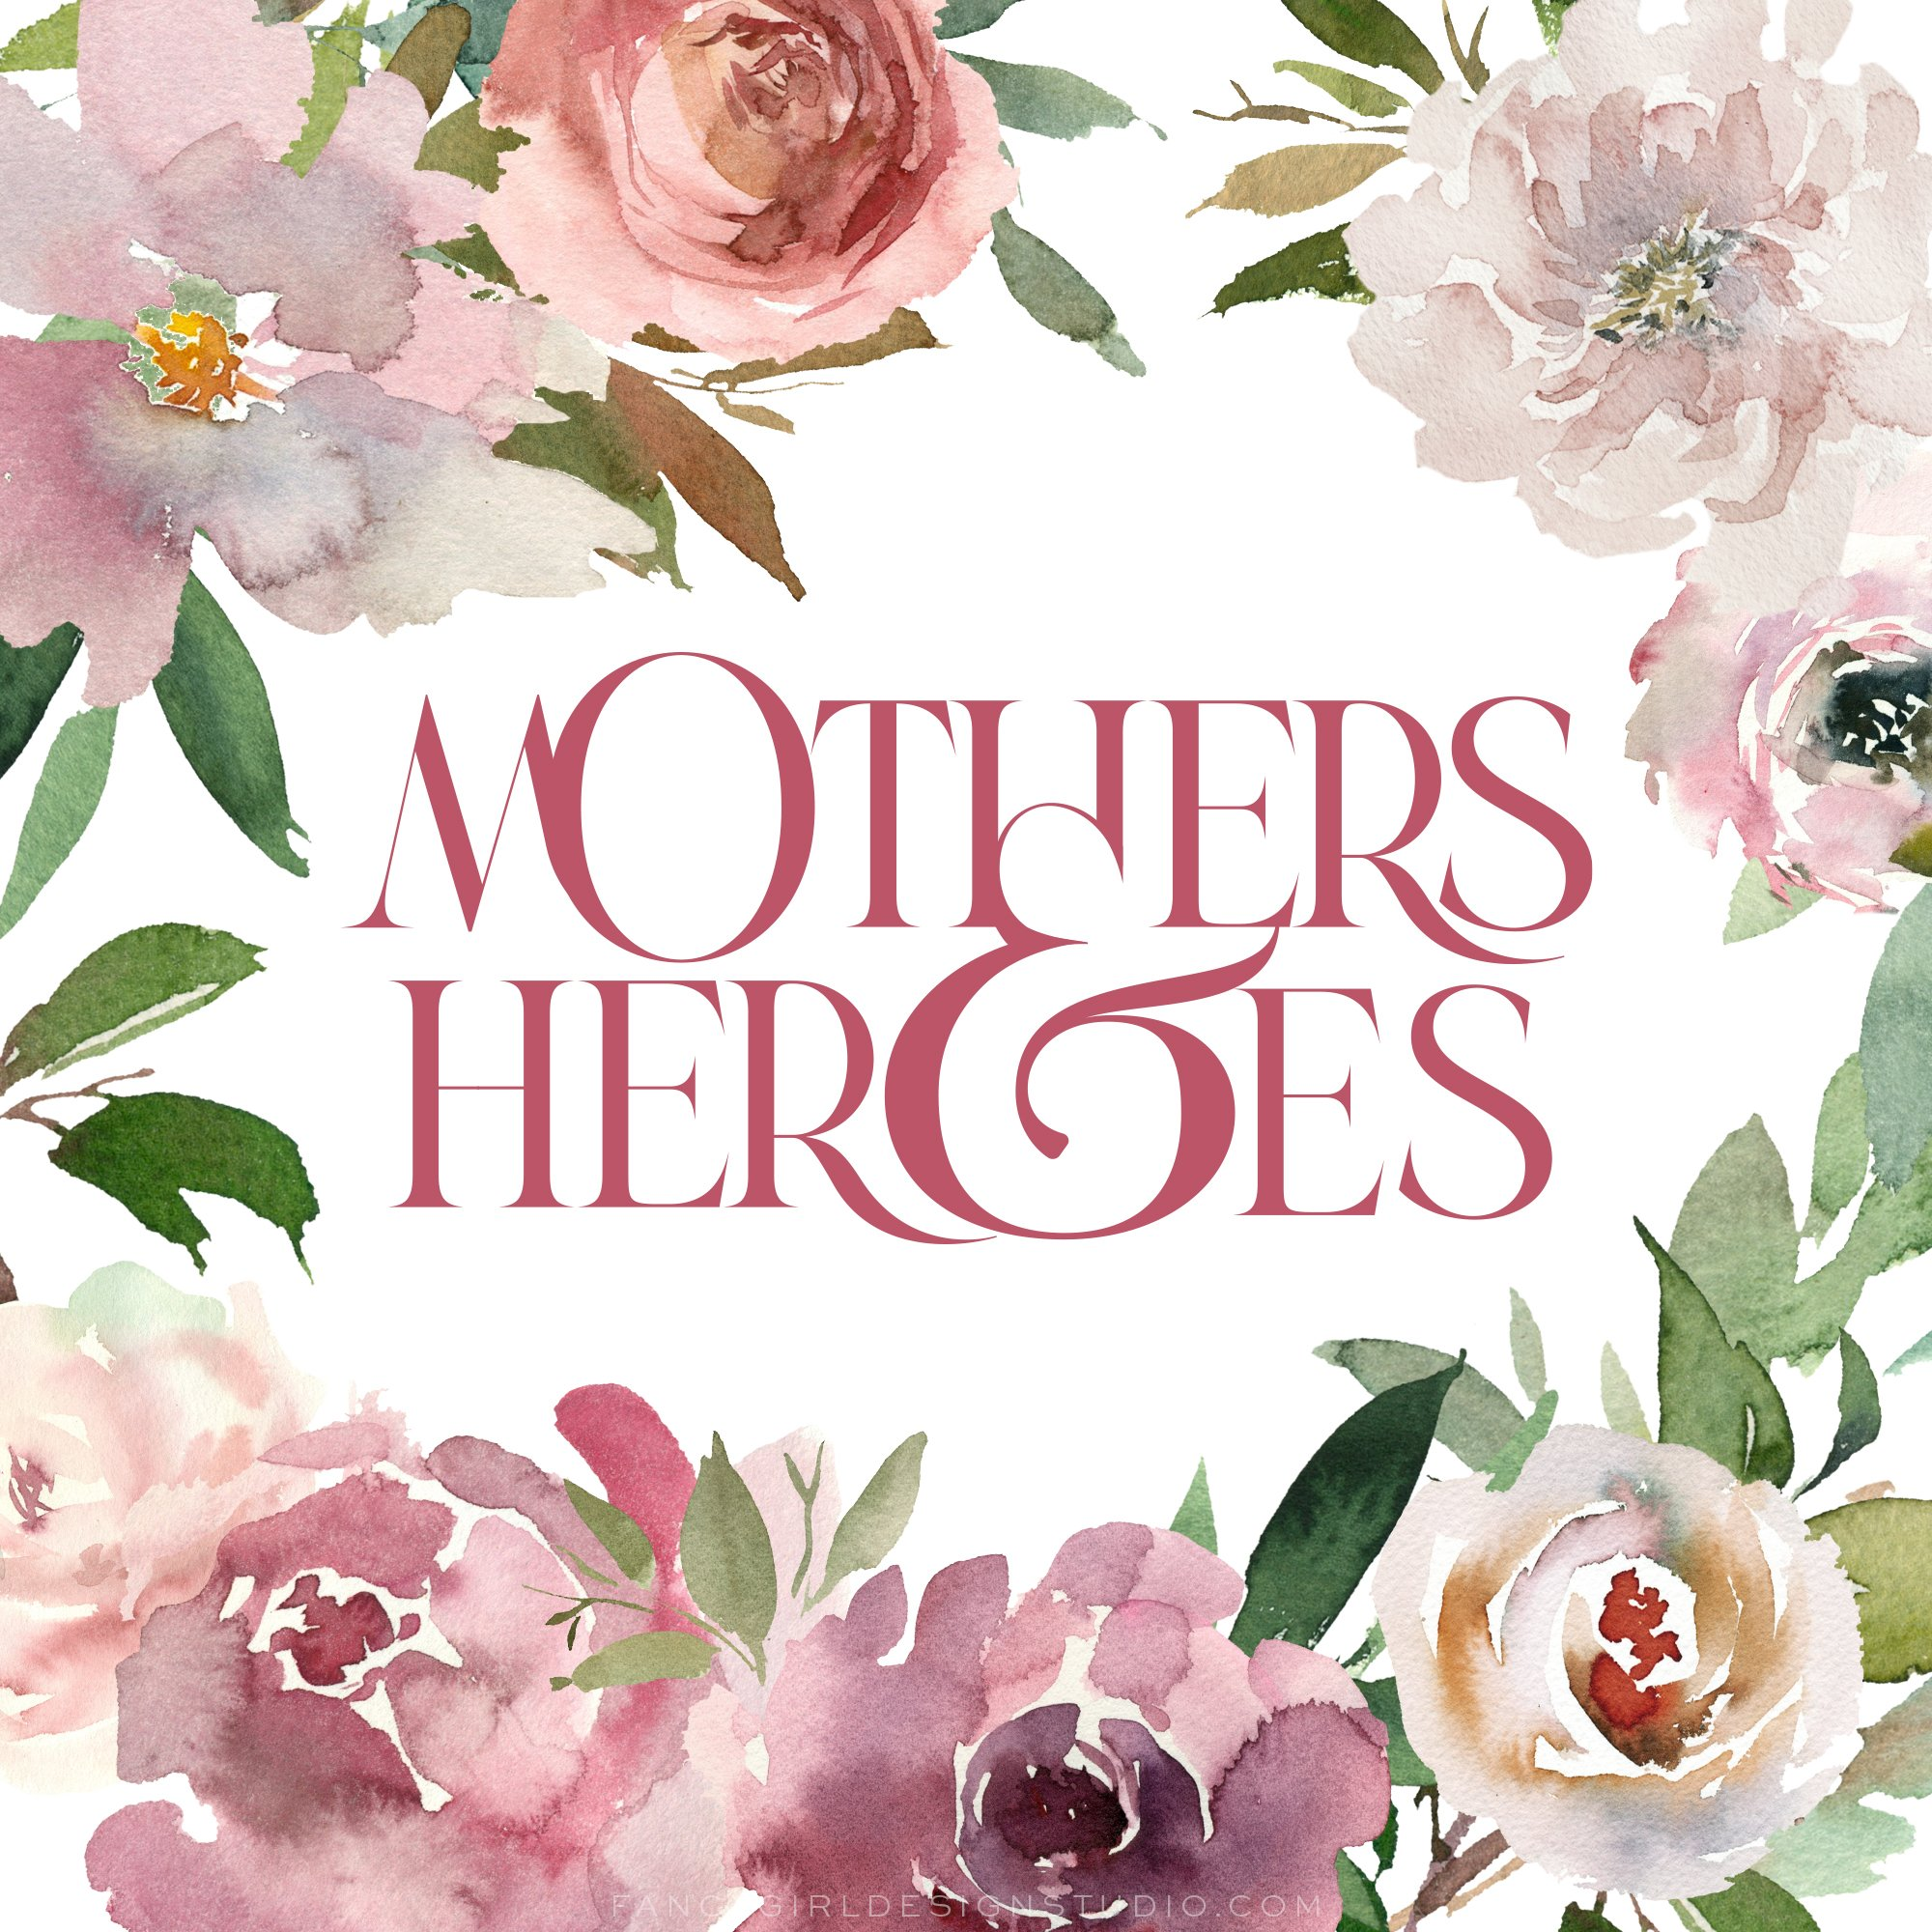 mothers and heroes pink text with floral watercolor frame